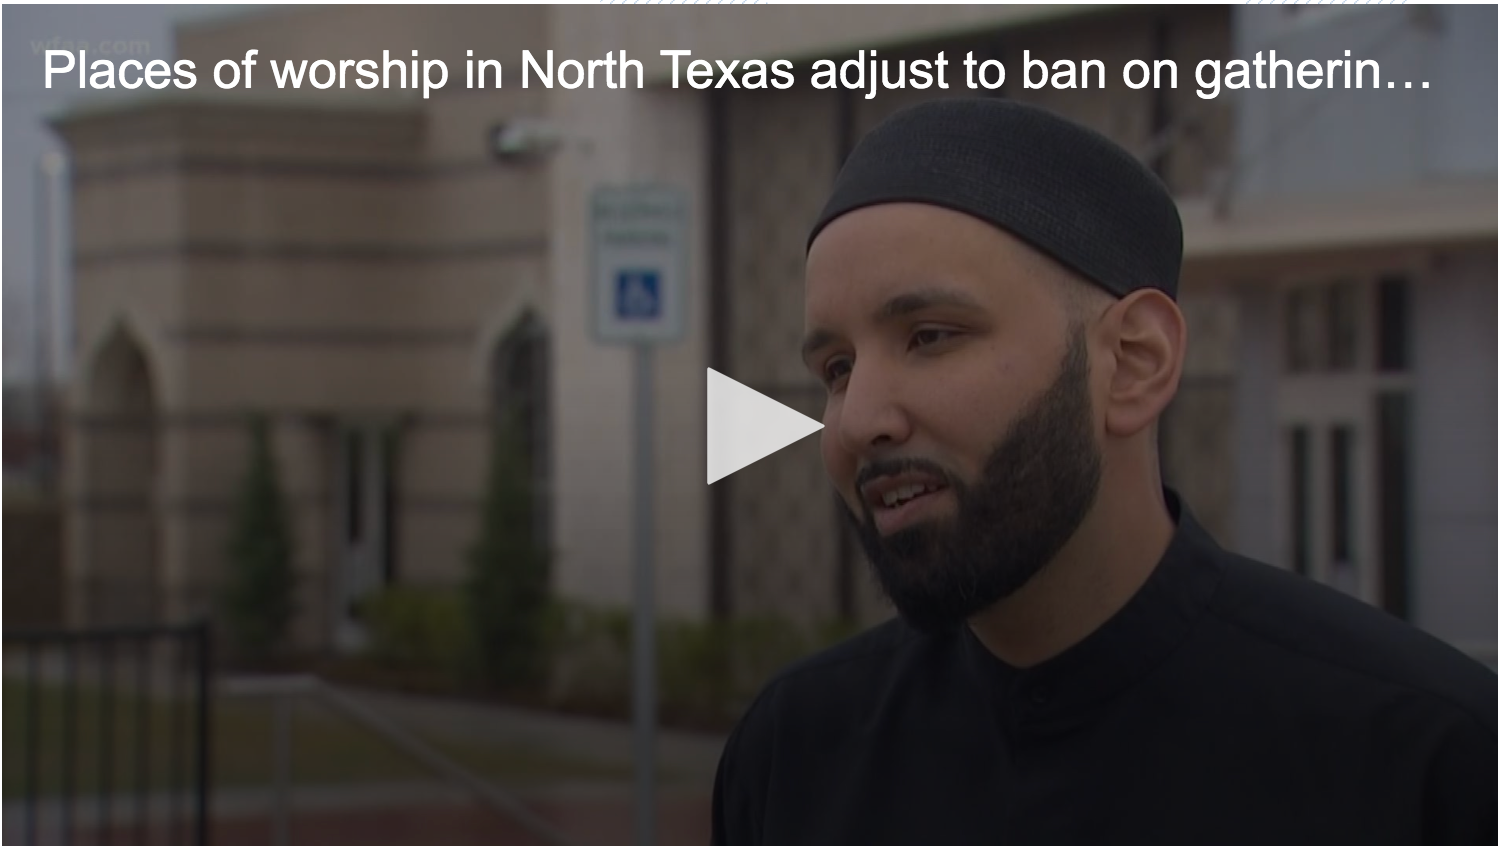 """WFAA: """"COVID-19 causes cancellations at churches, mosques across North Texas"""""""